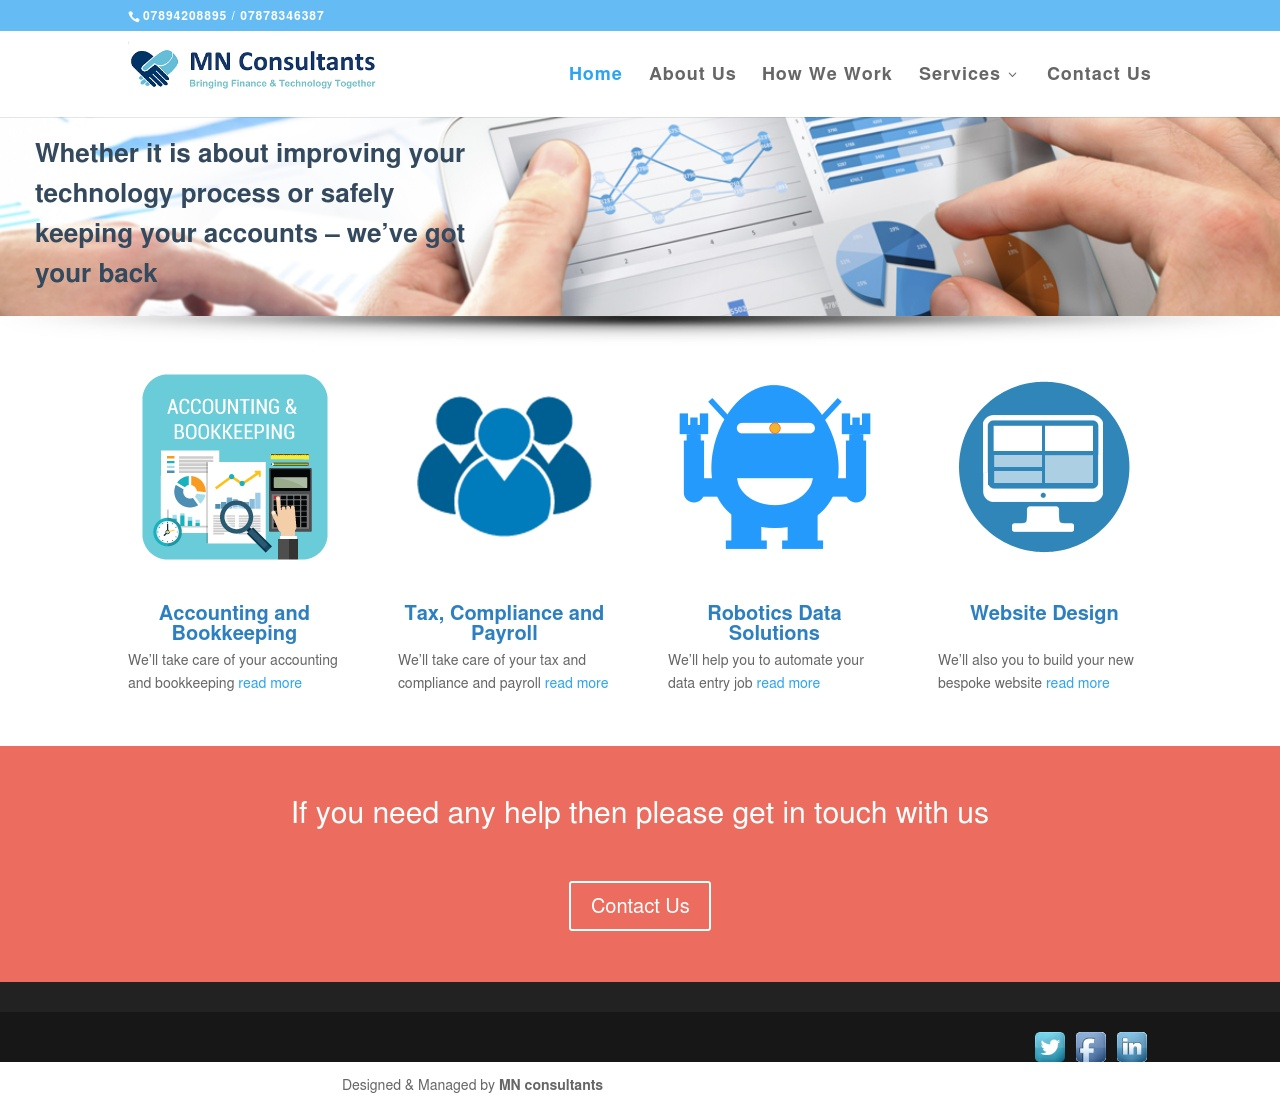 We Have Been Designing Many Websites For Financial And IT Consultants  Businesses With 100% Satisfaction From Our Client. Get The Look At A Price  You Will ...